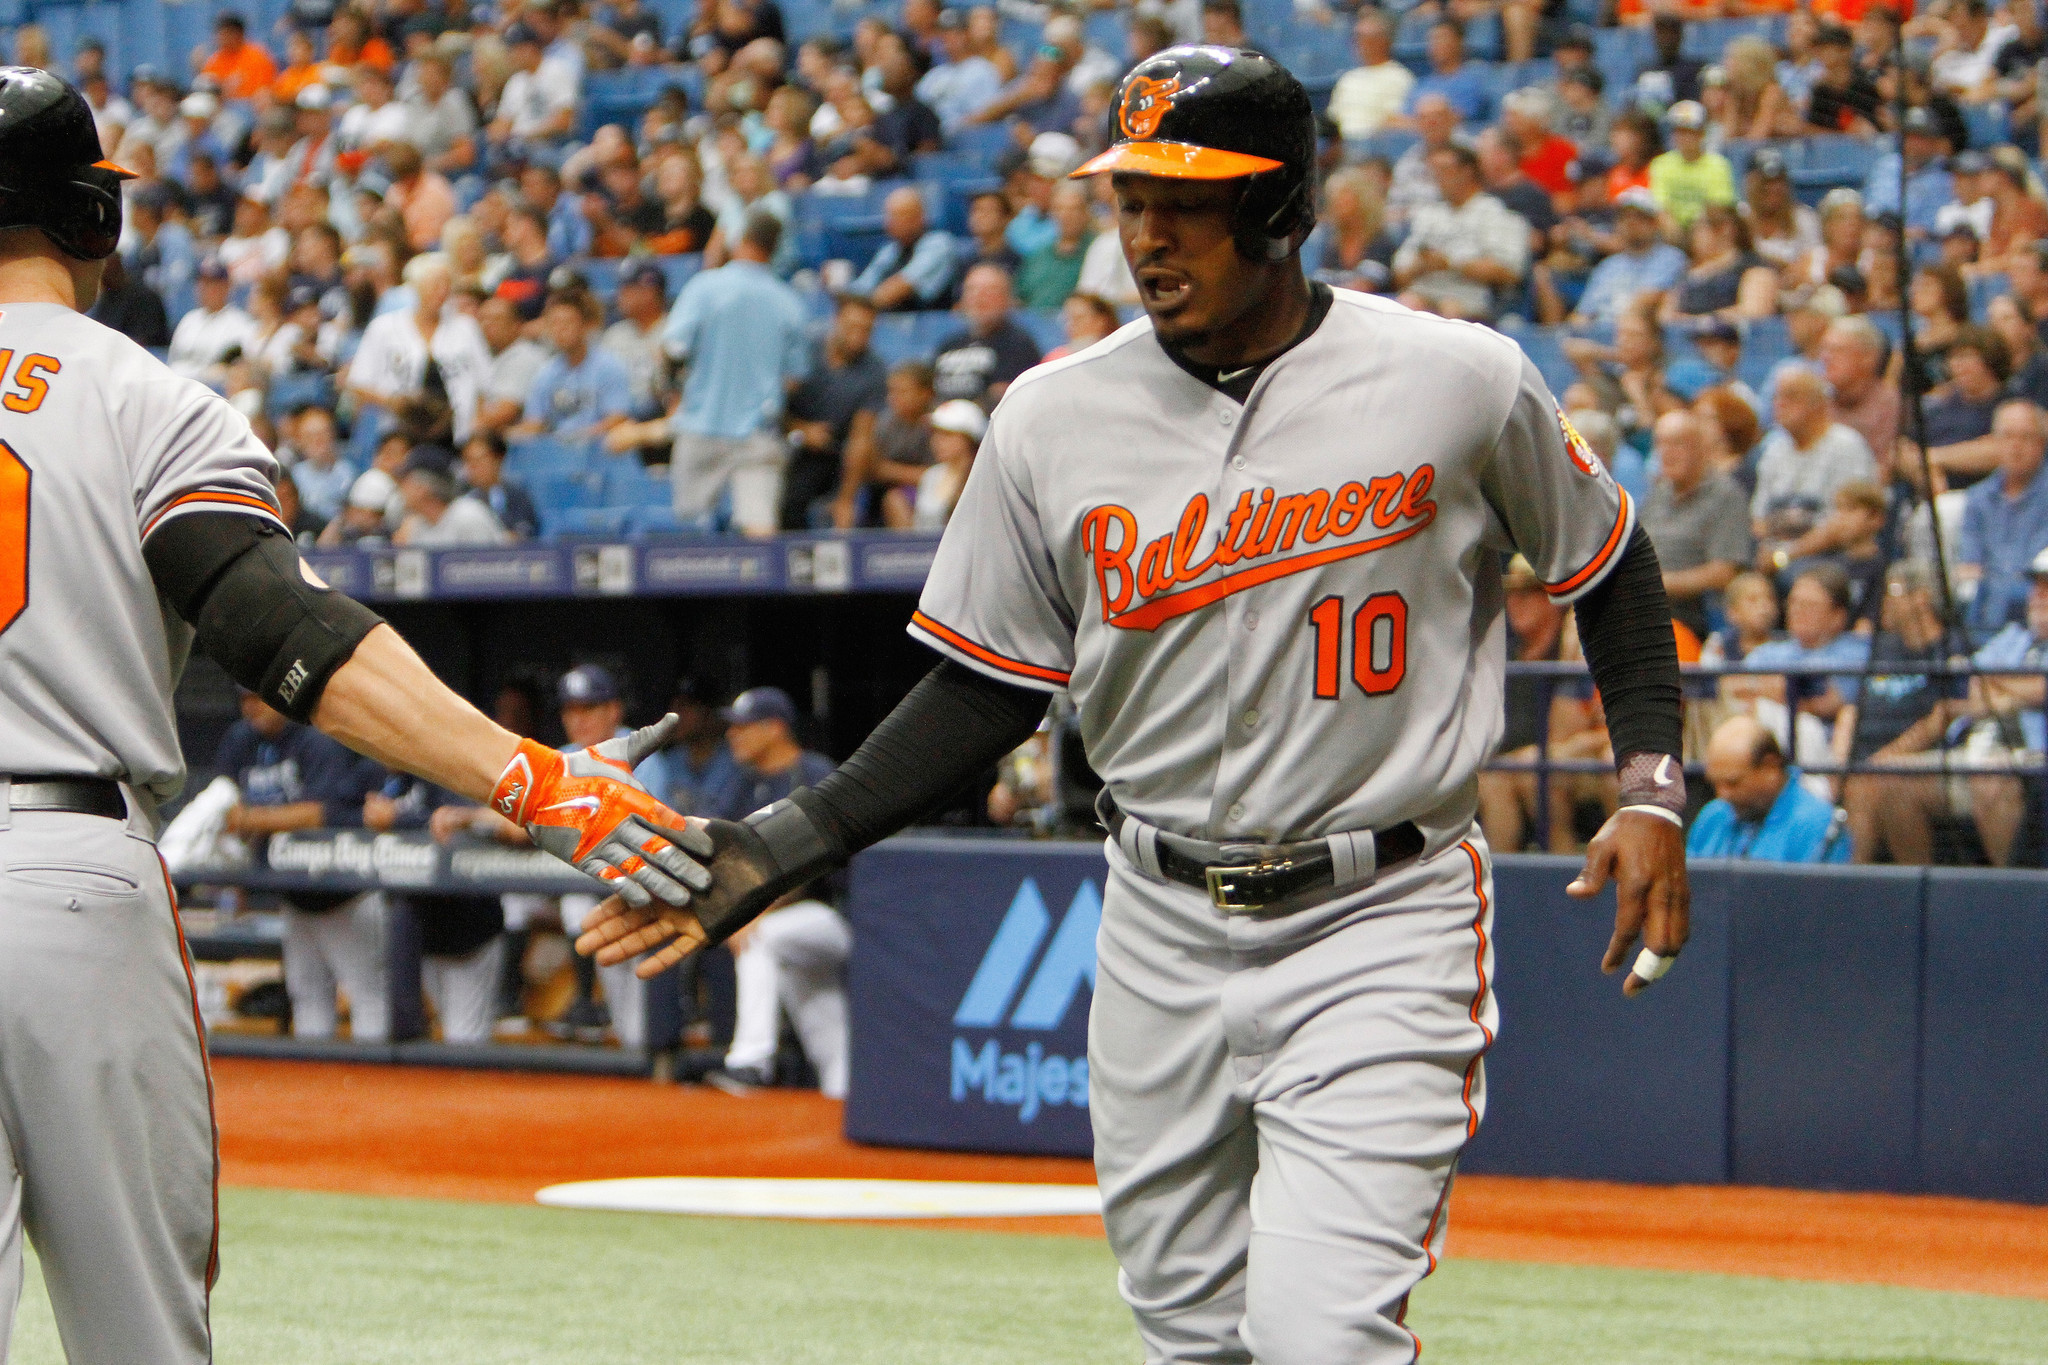 Bal-orioles-on-deck-what-to-watch-friday-vs-indians-20160722